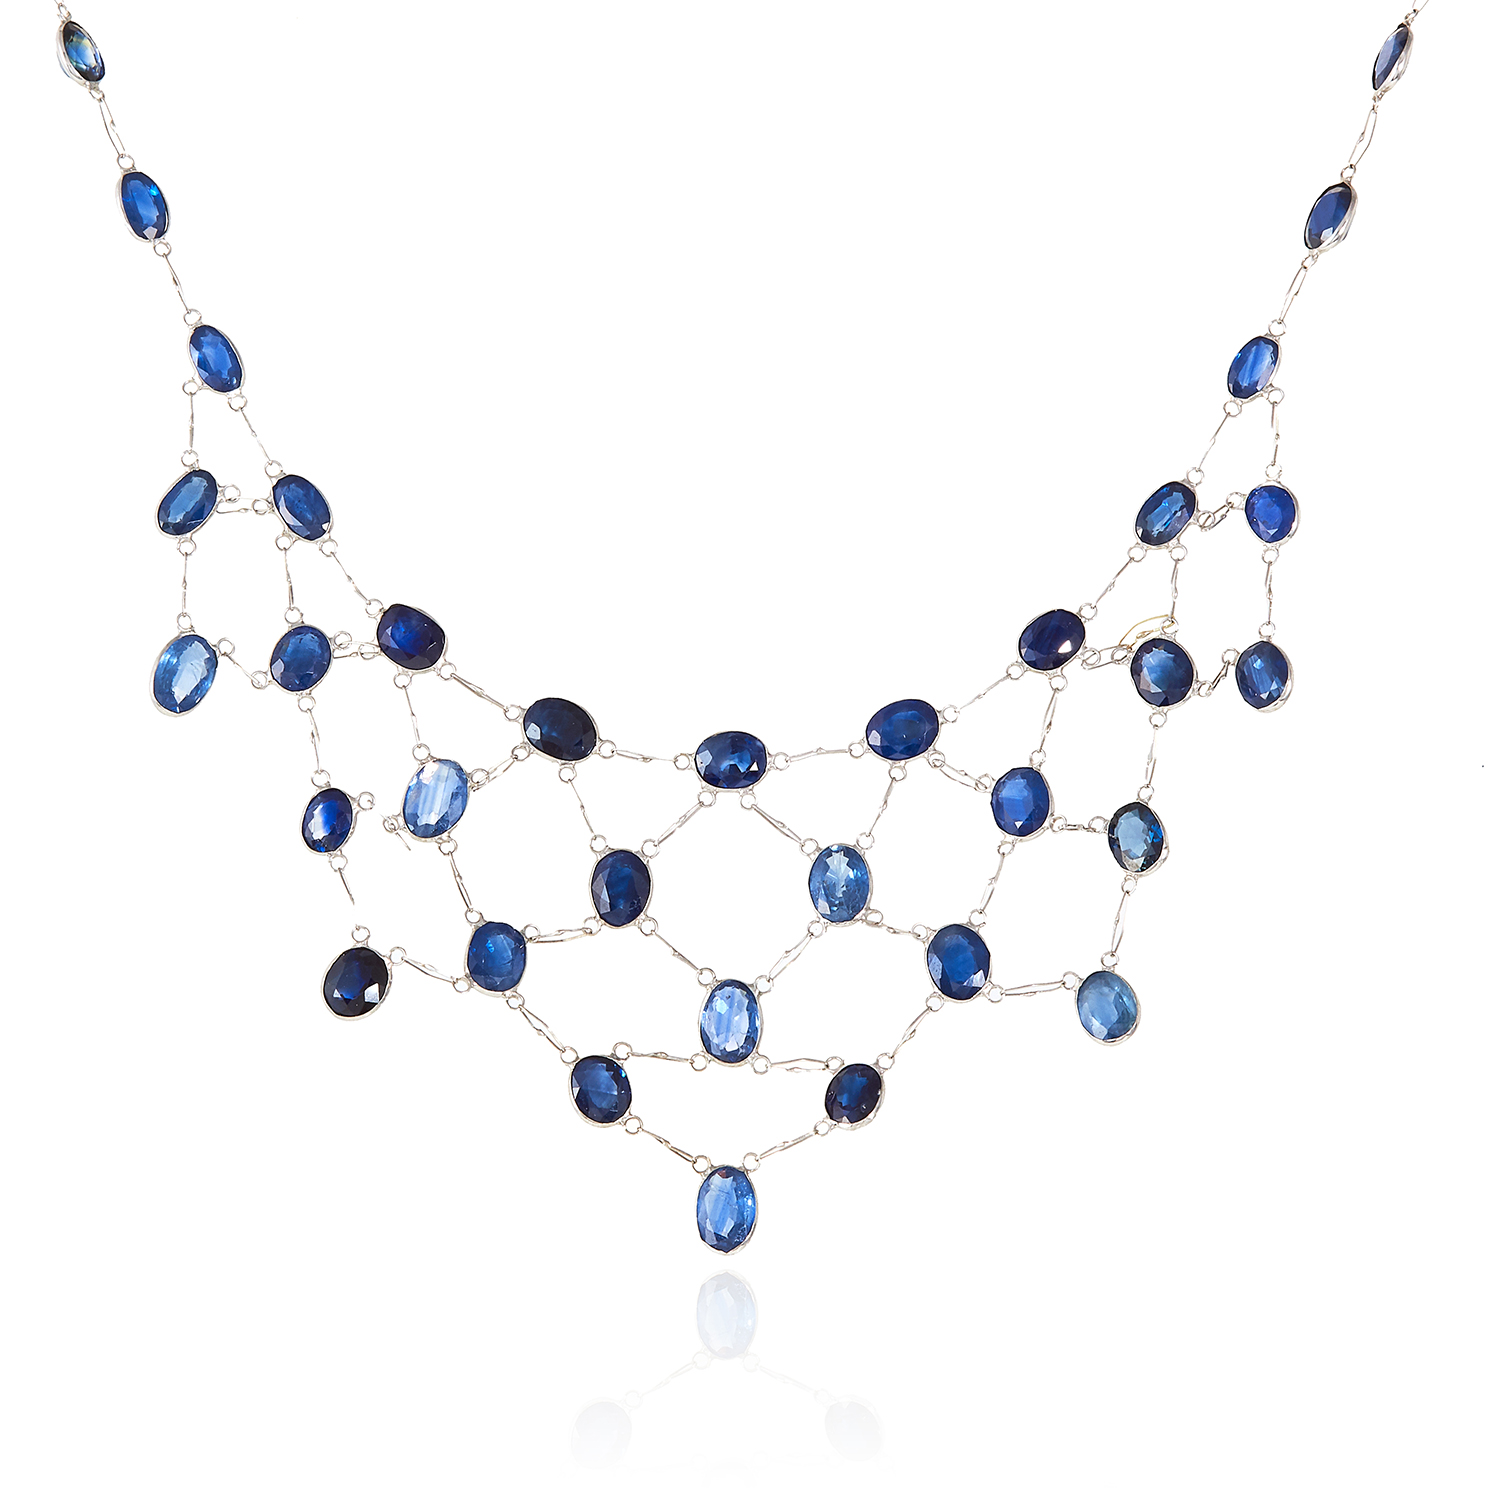 A SAPPHIRE NECKLACE in 14ct white gold, comprising of a single row of oval cut sapphires